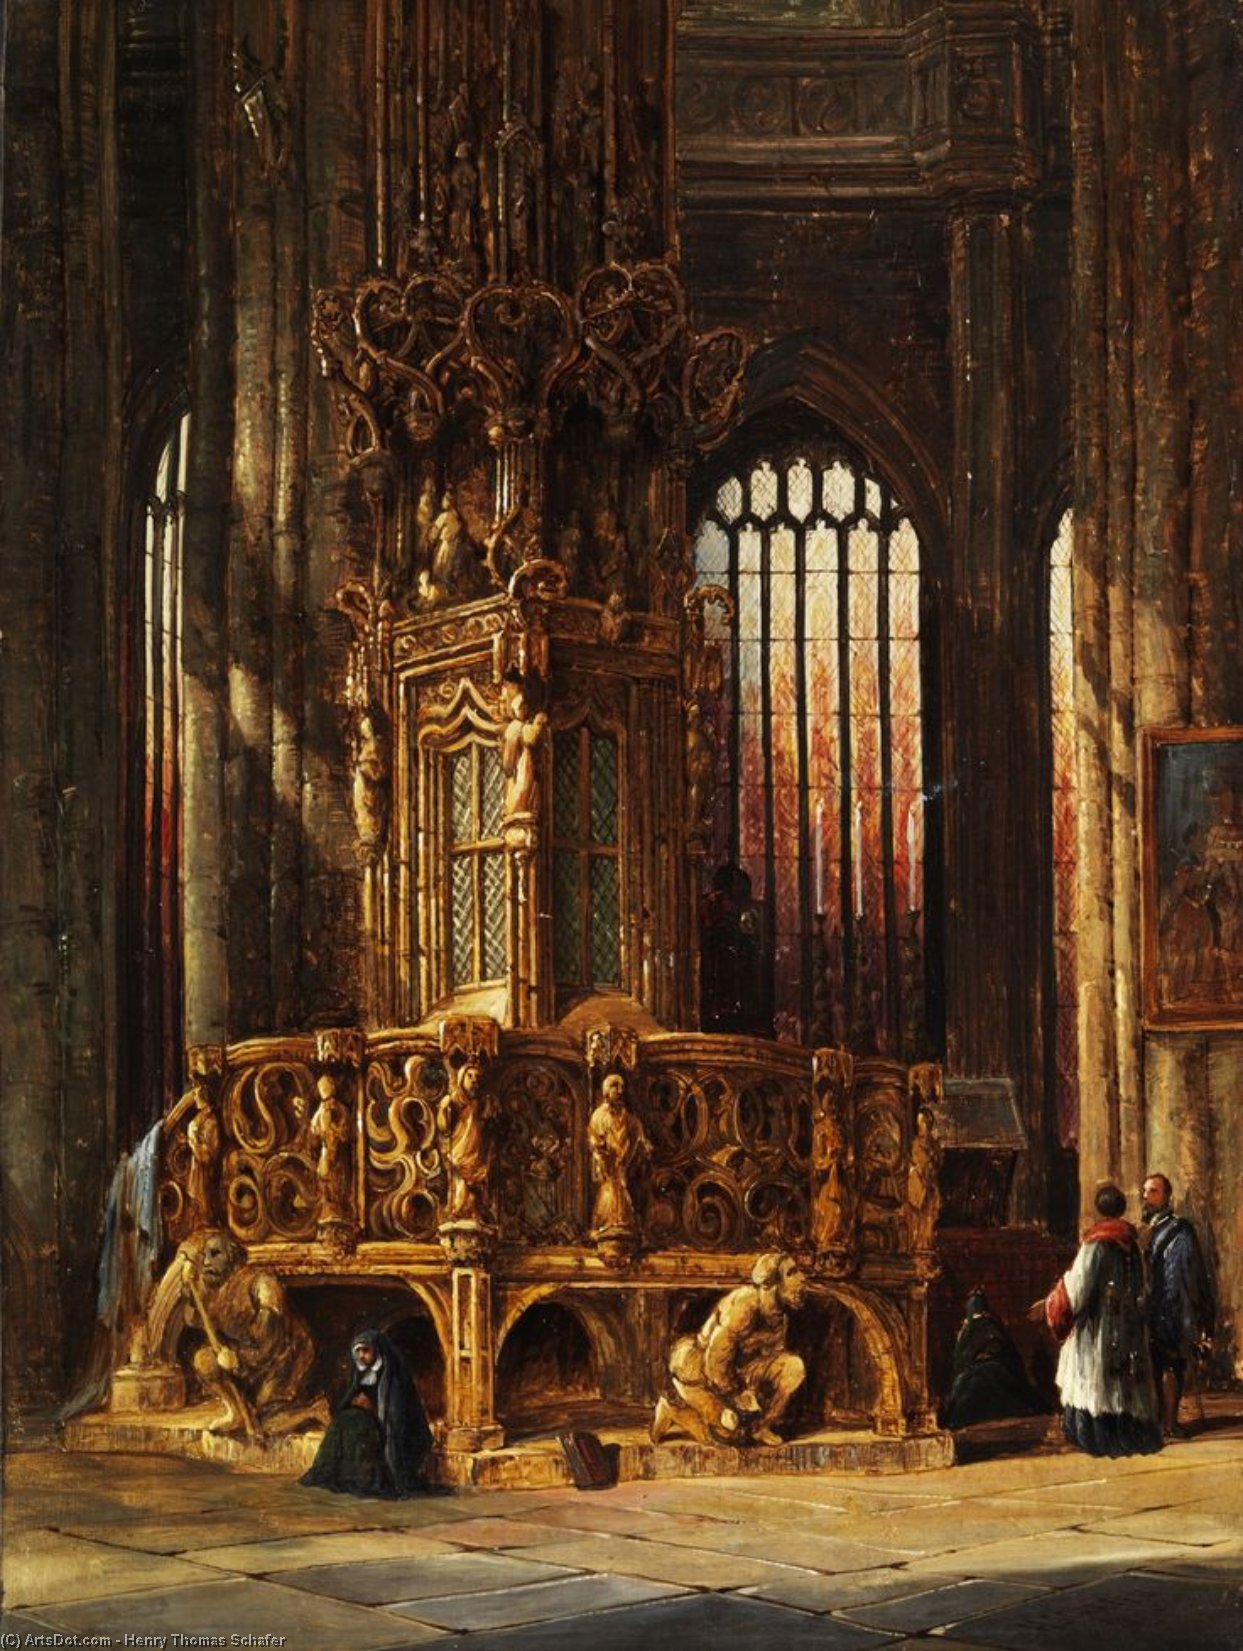 Interior Of St Lawrence Church Nuremberg Tabernacle by Henry Thomas Schafer (1873-1915, France)